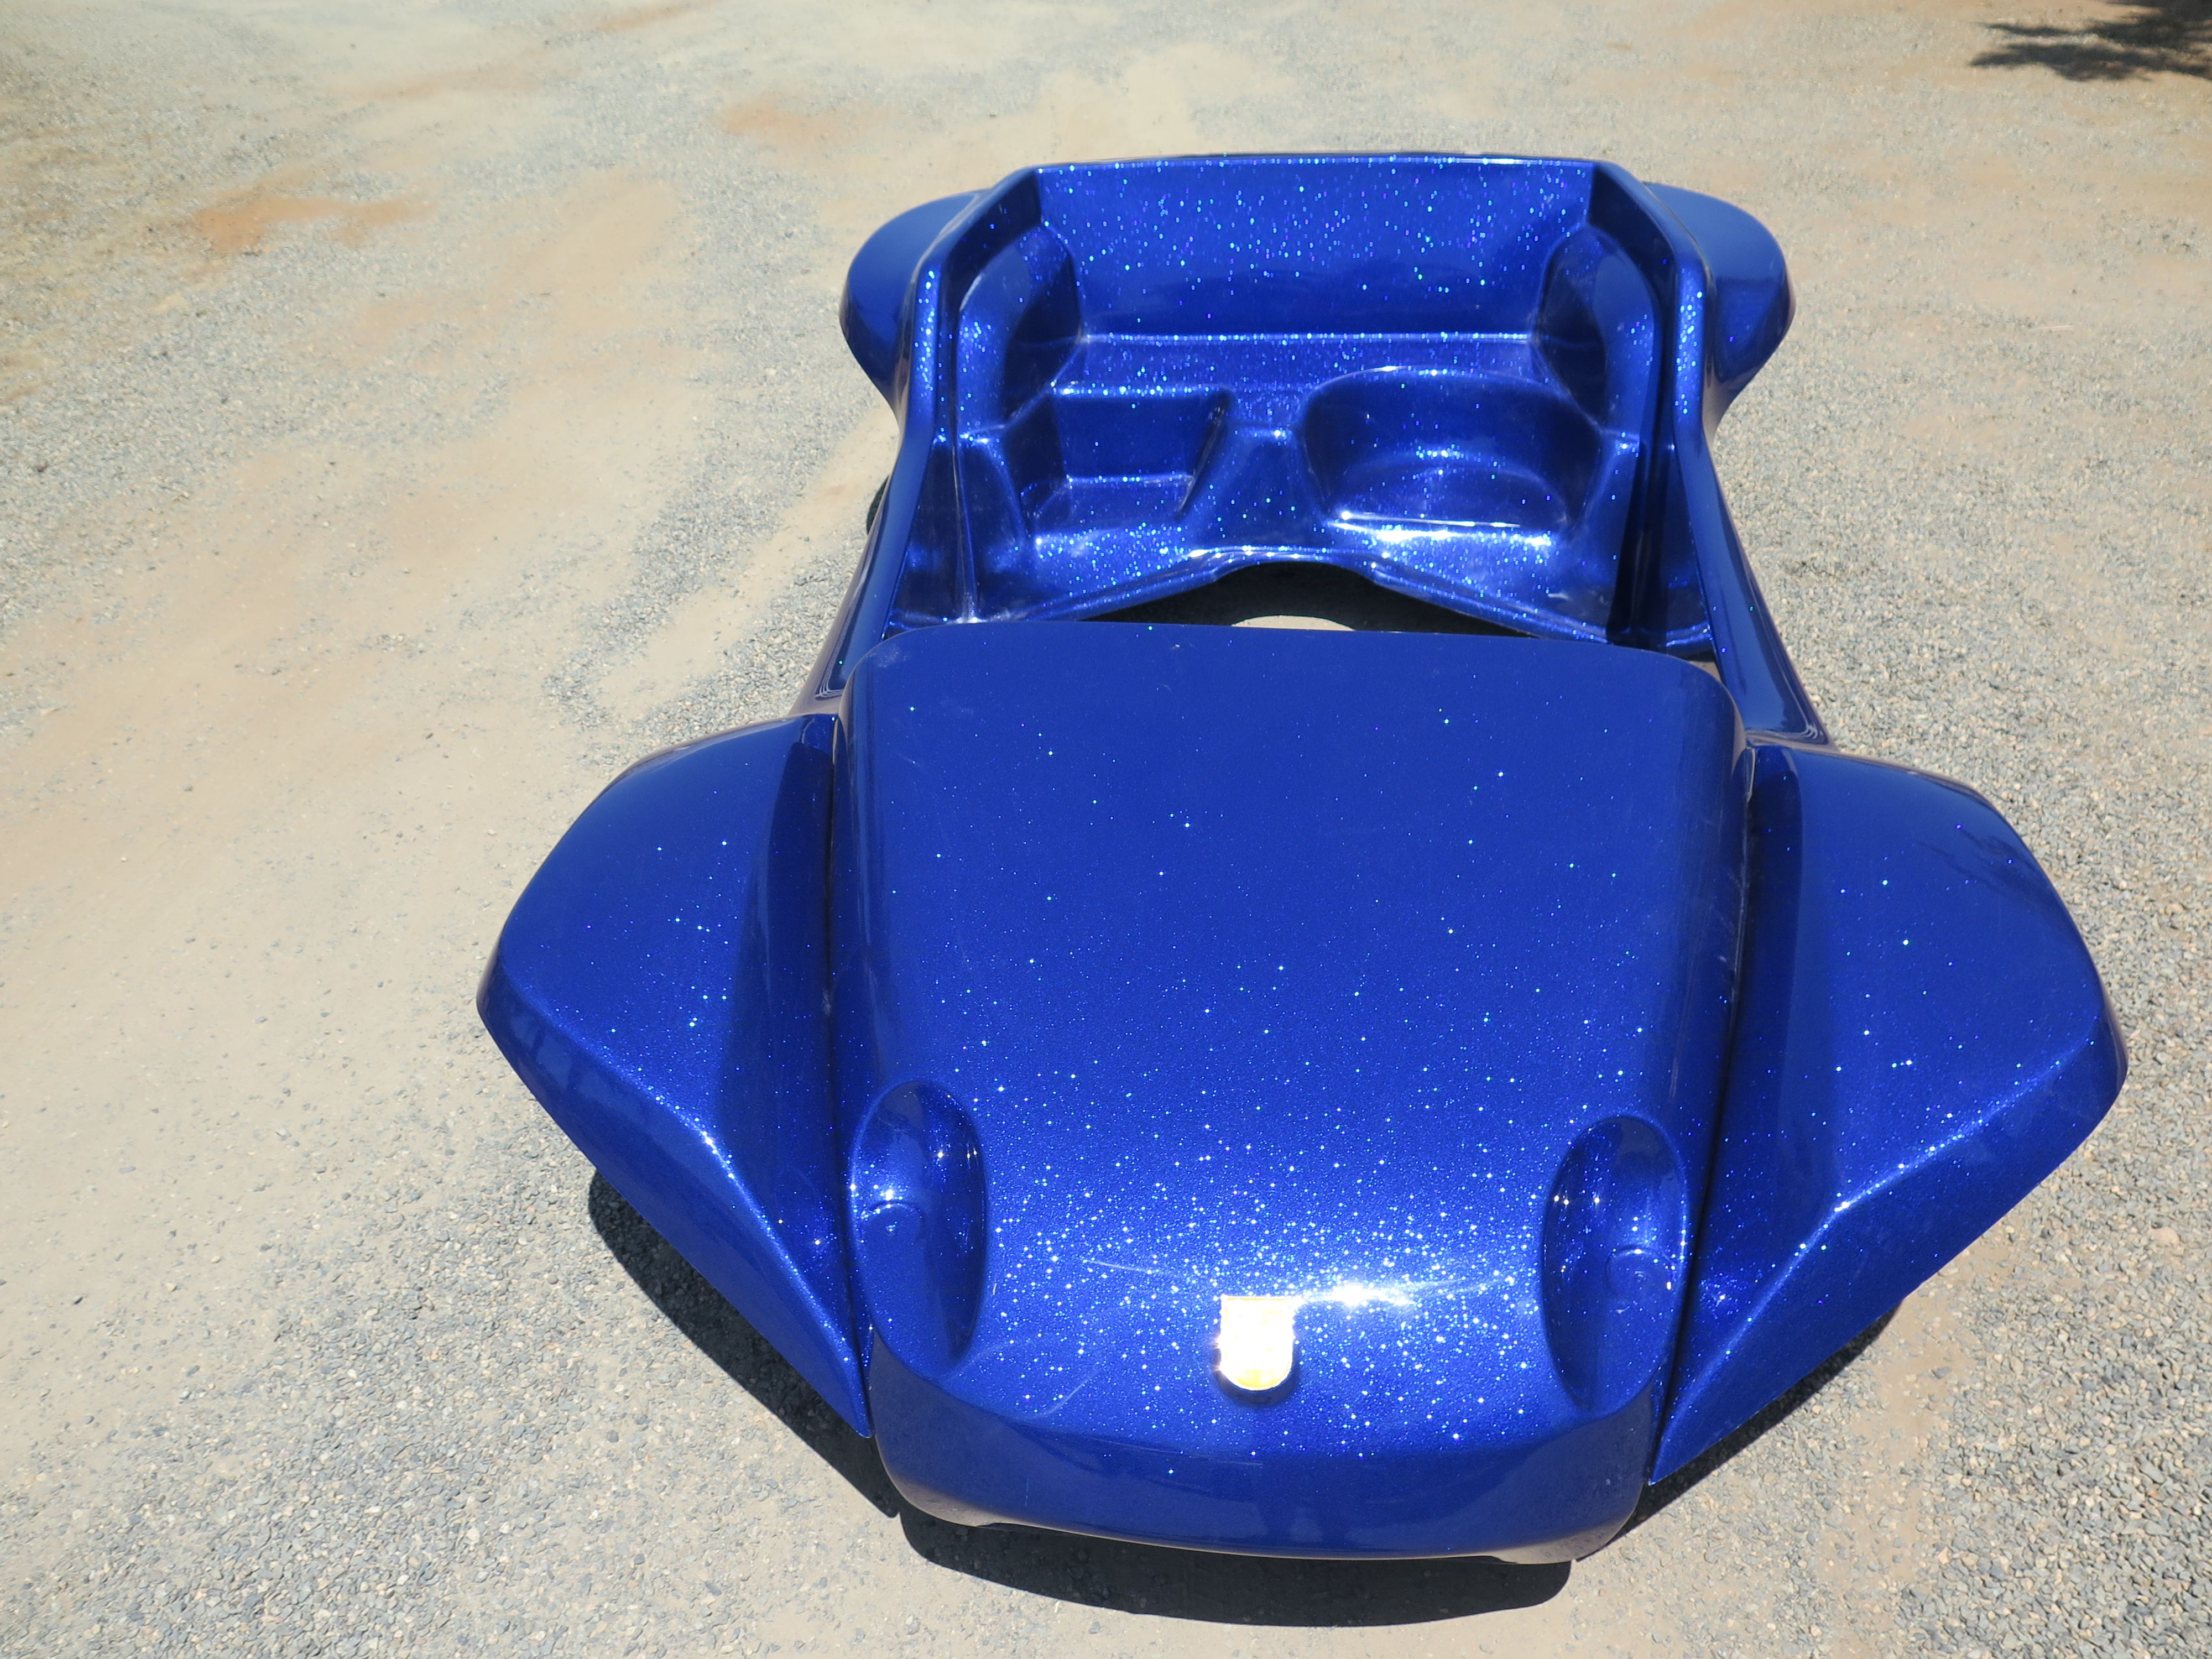 Kick-Out Traditional body in a Canadian Blue metalflake - Meyers Manx kit body